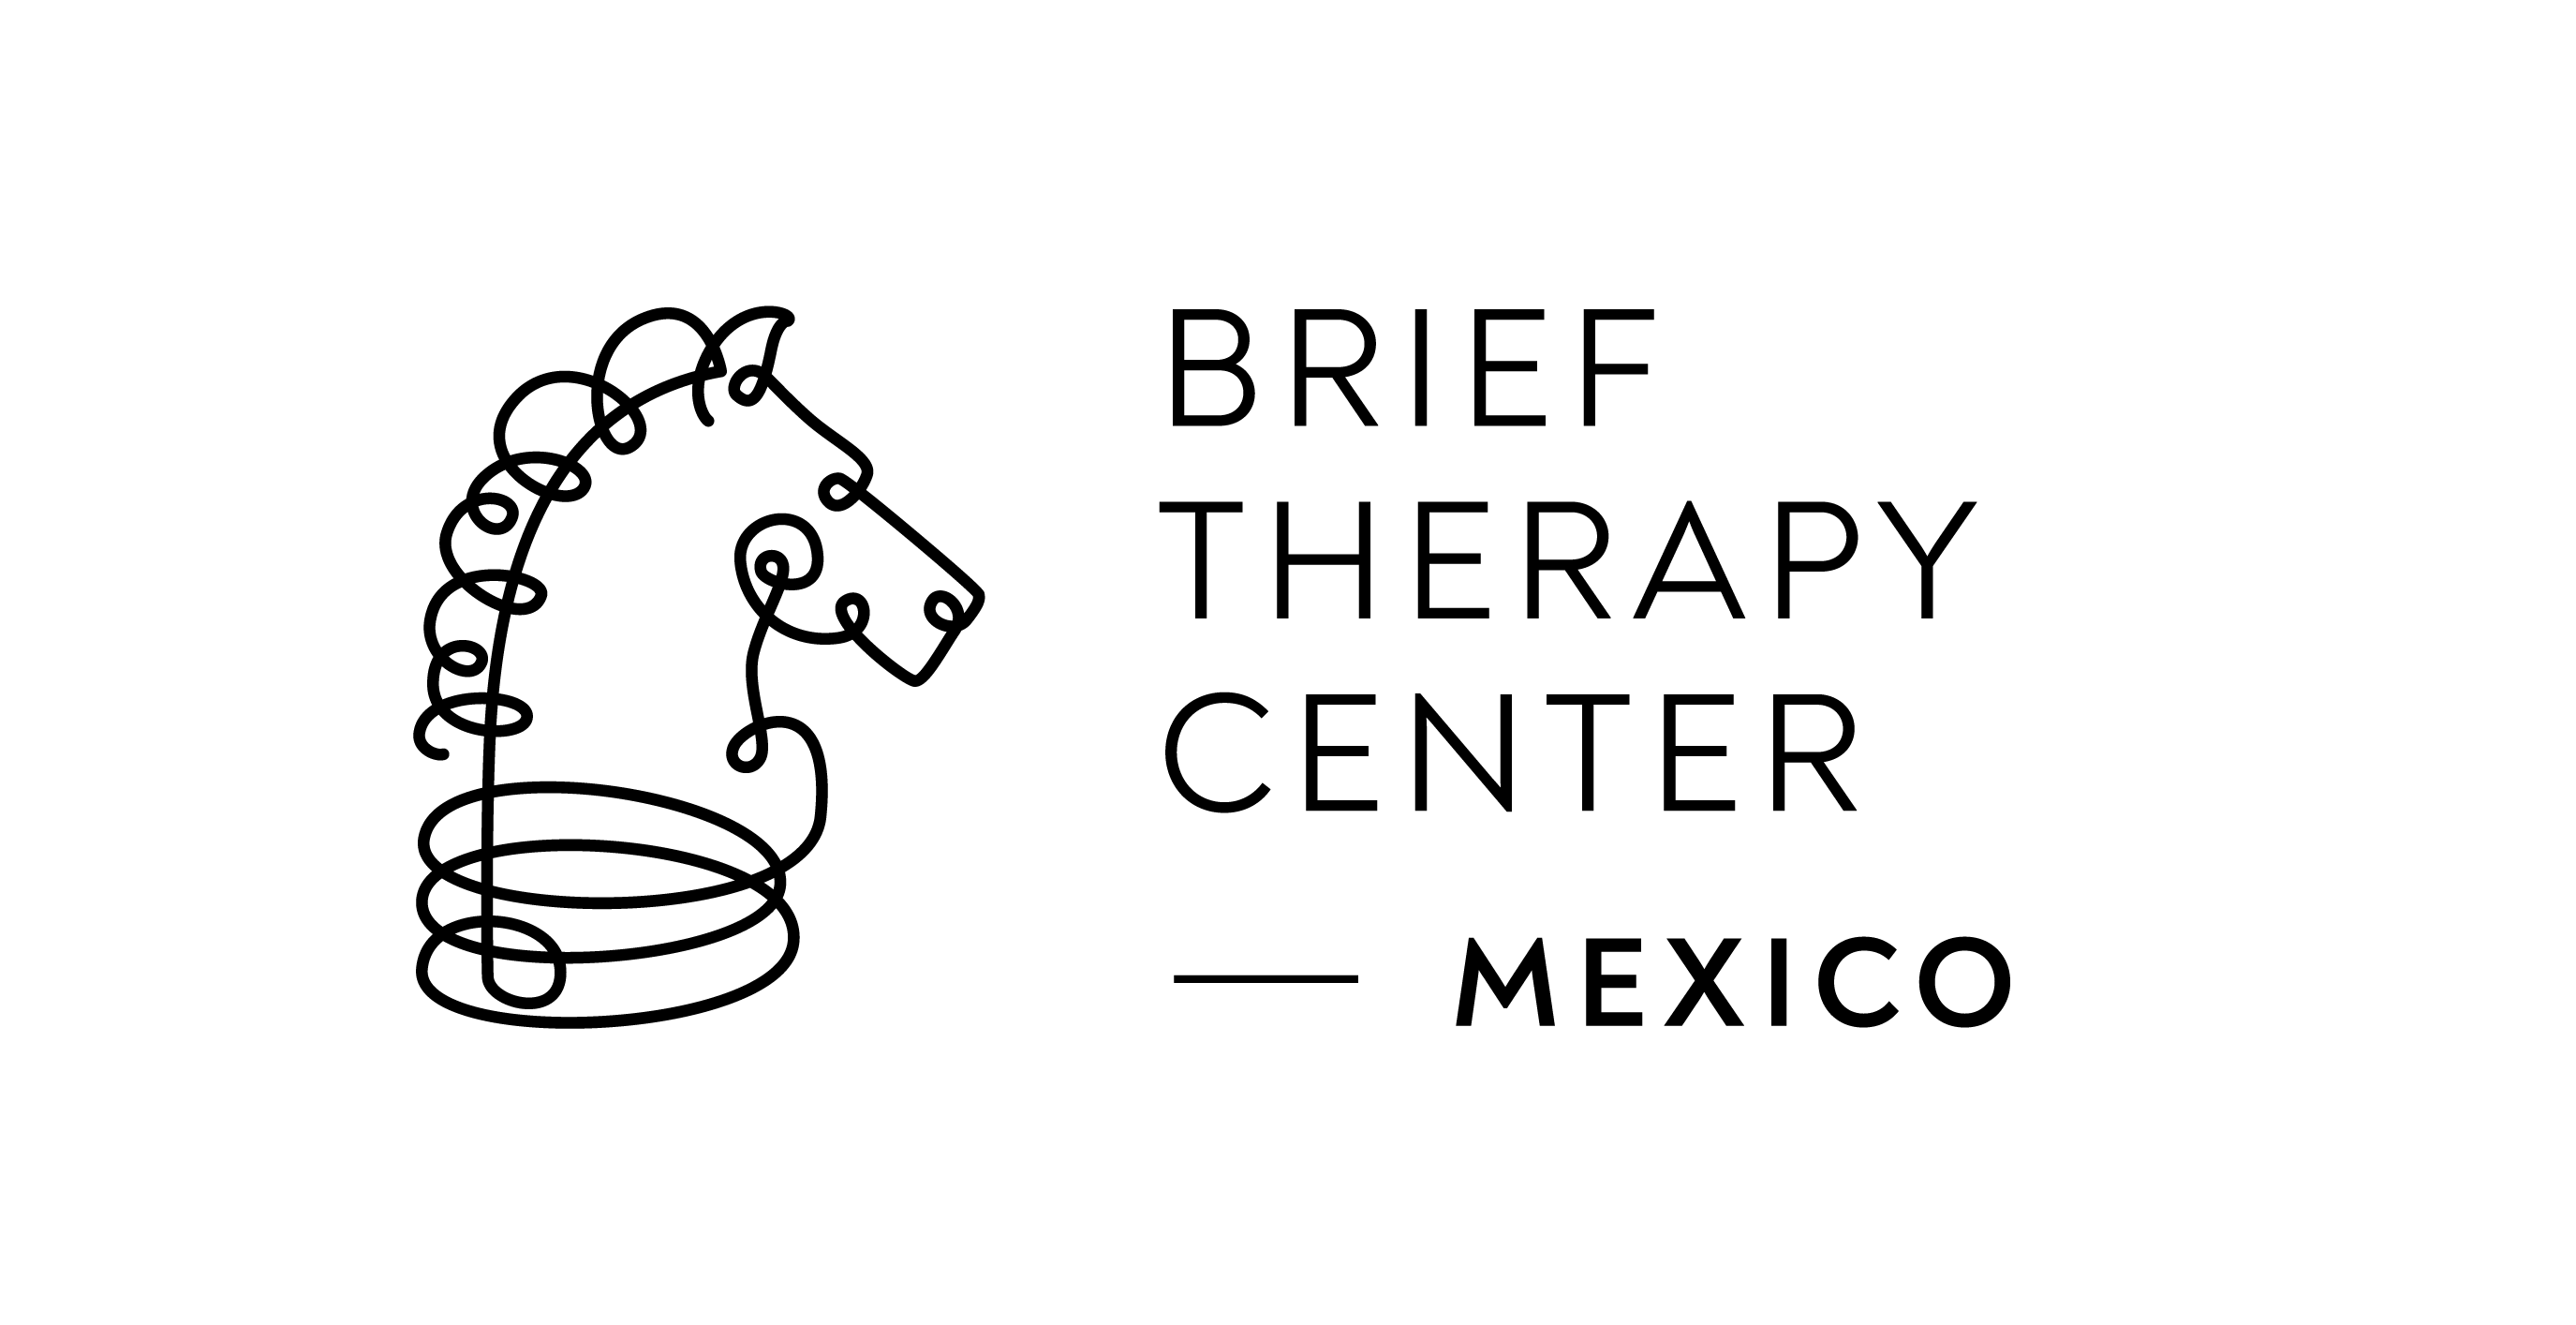 Brief Therapy Center México Marca Condensada